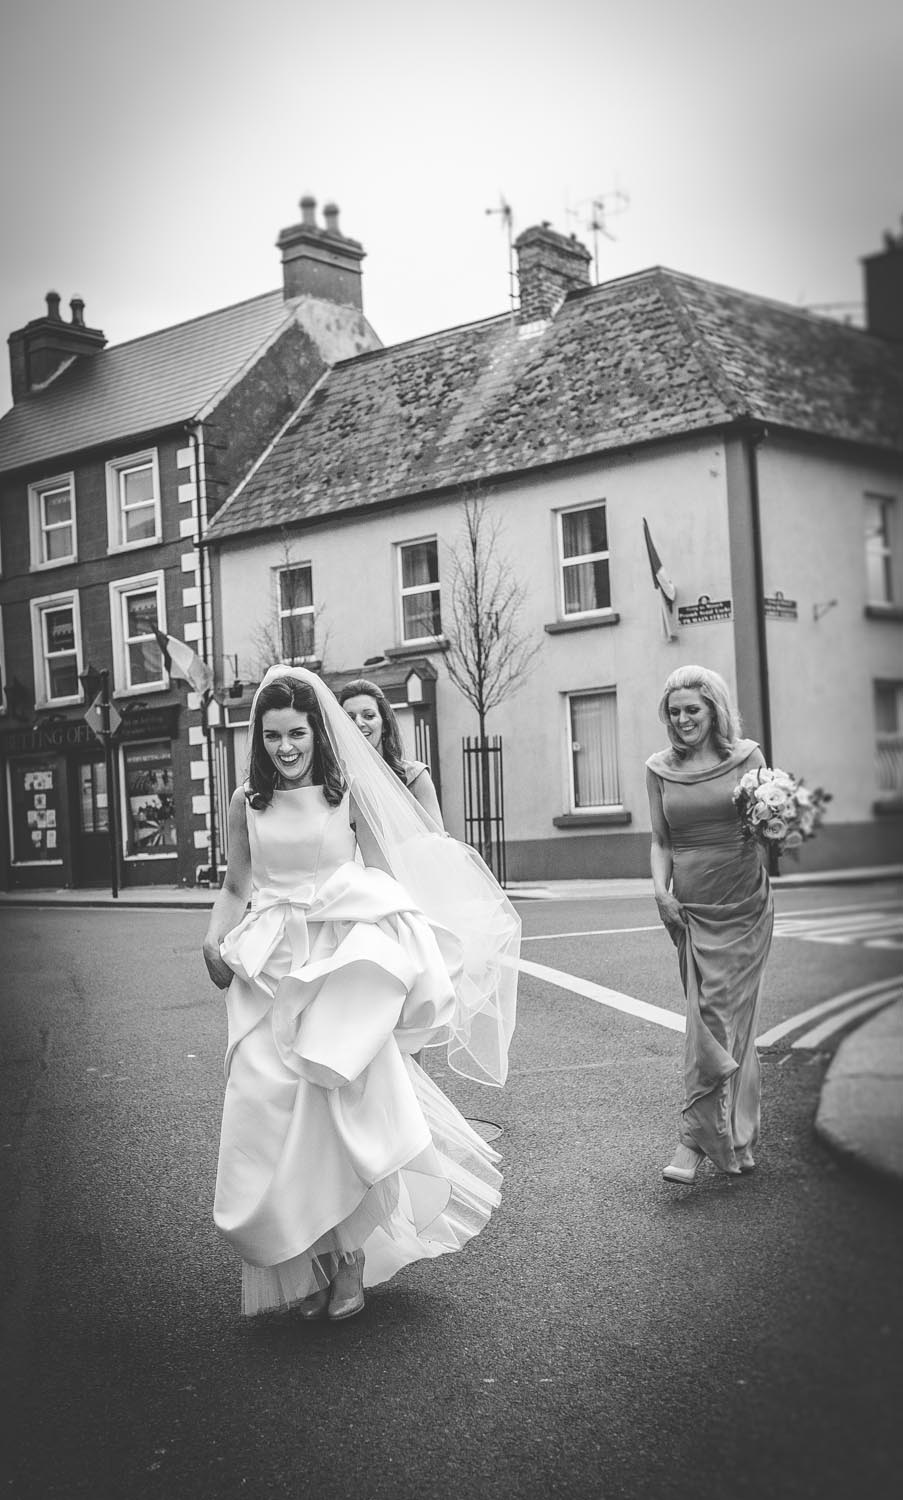 Step House wedding photographer Carlow Borris075.jpg